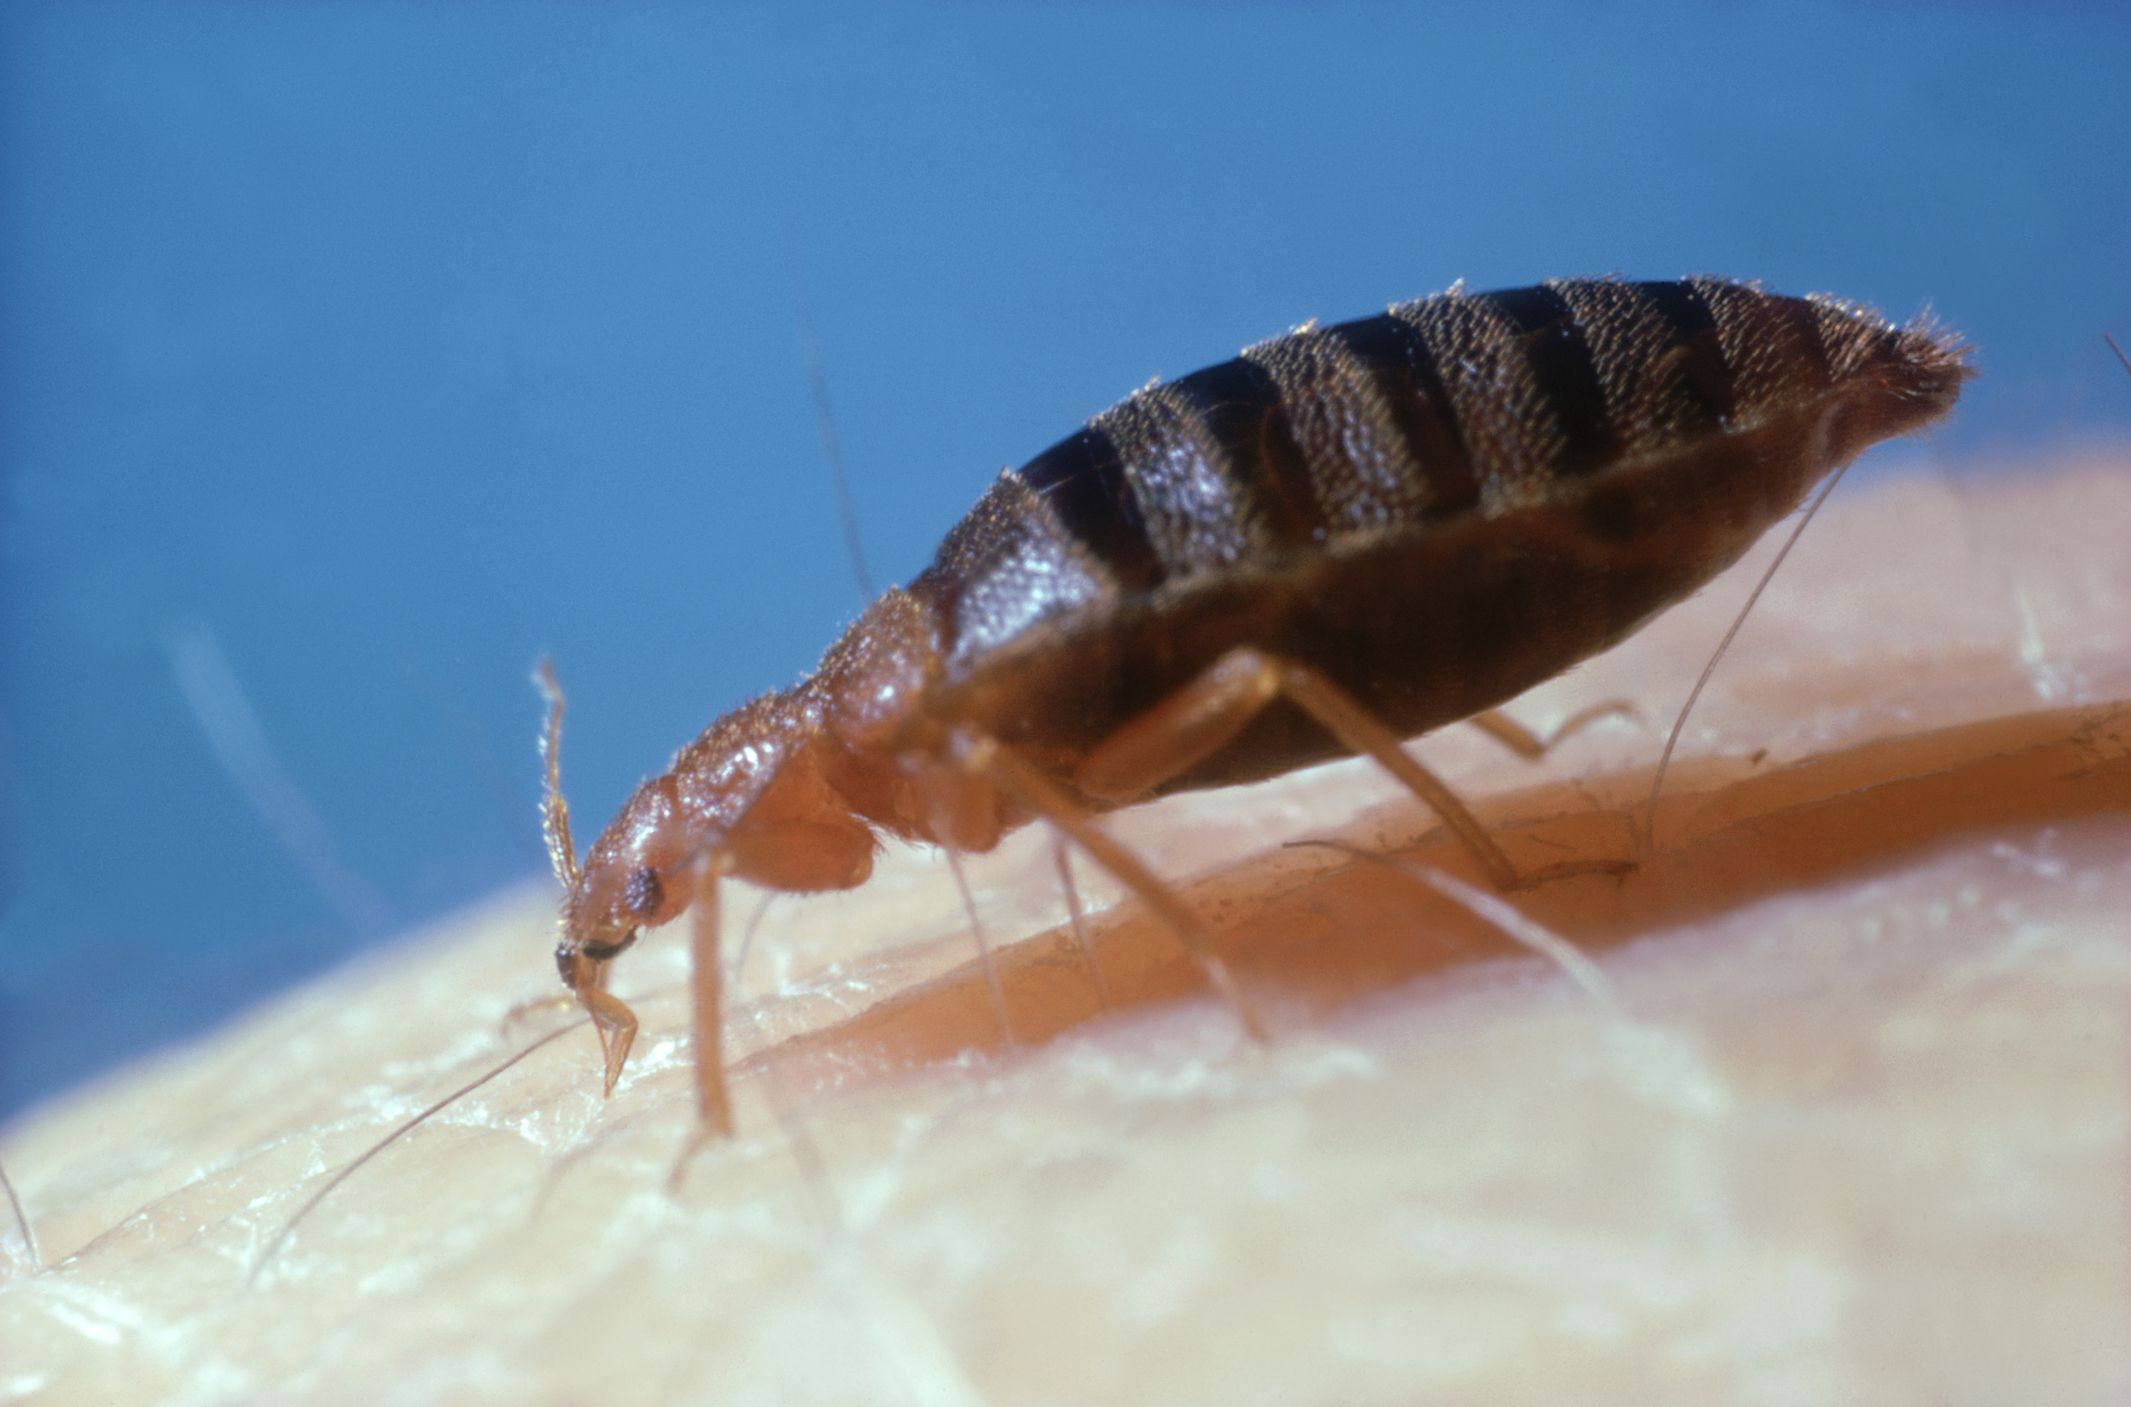 A bed bug feeding. What Good Is a Bed Bug Mattress Cover